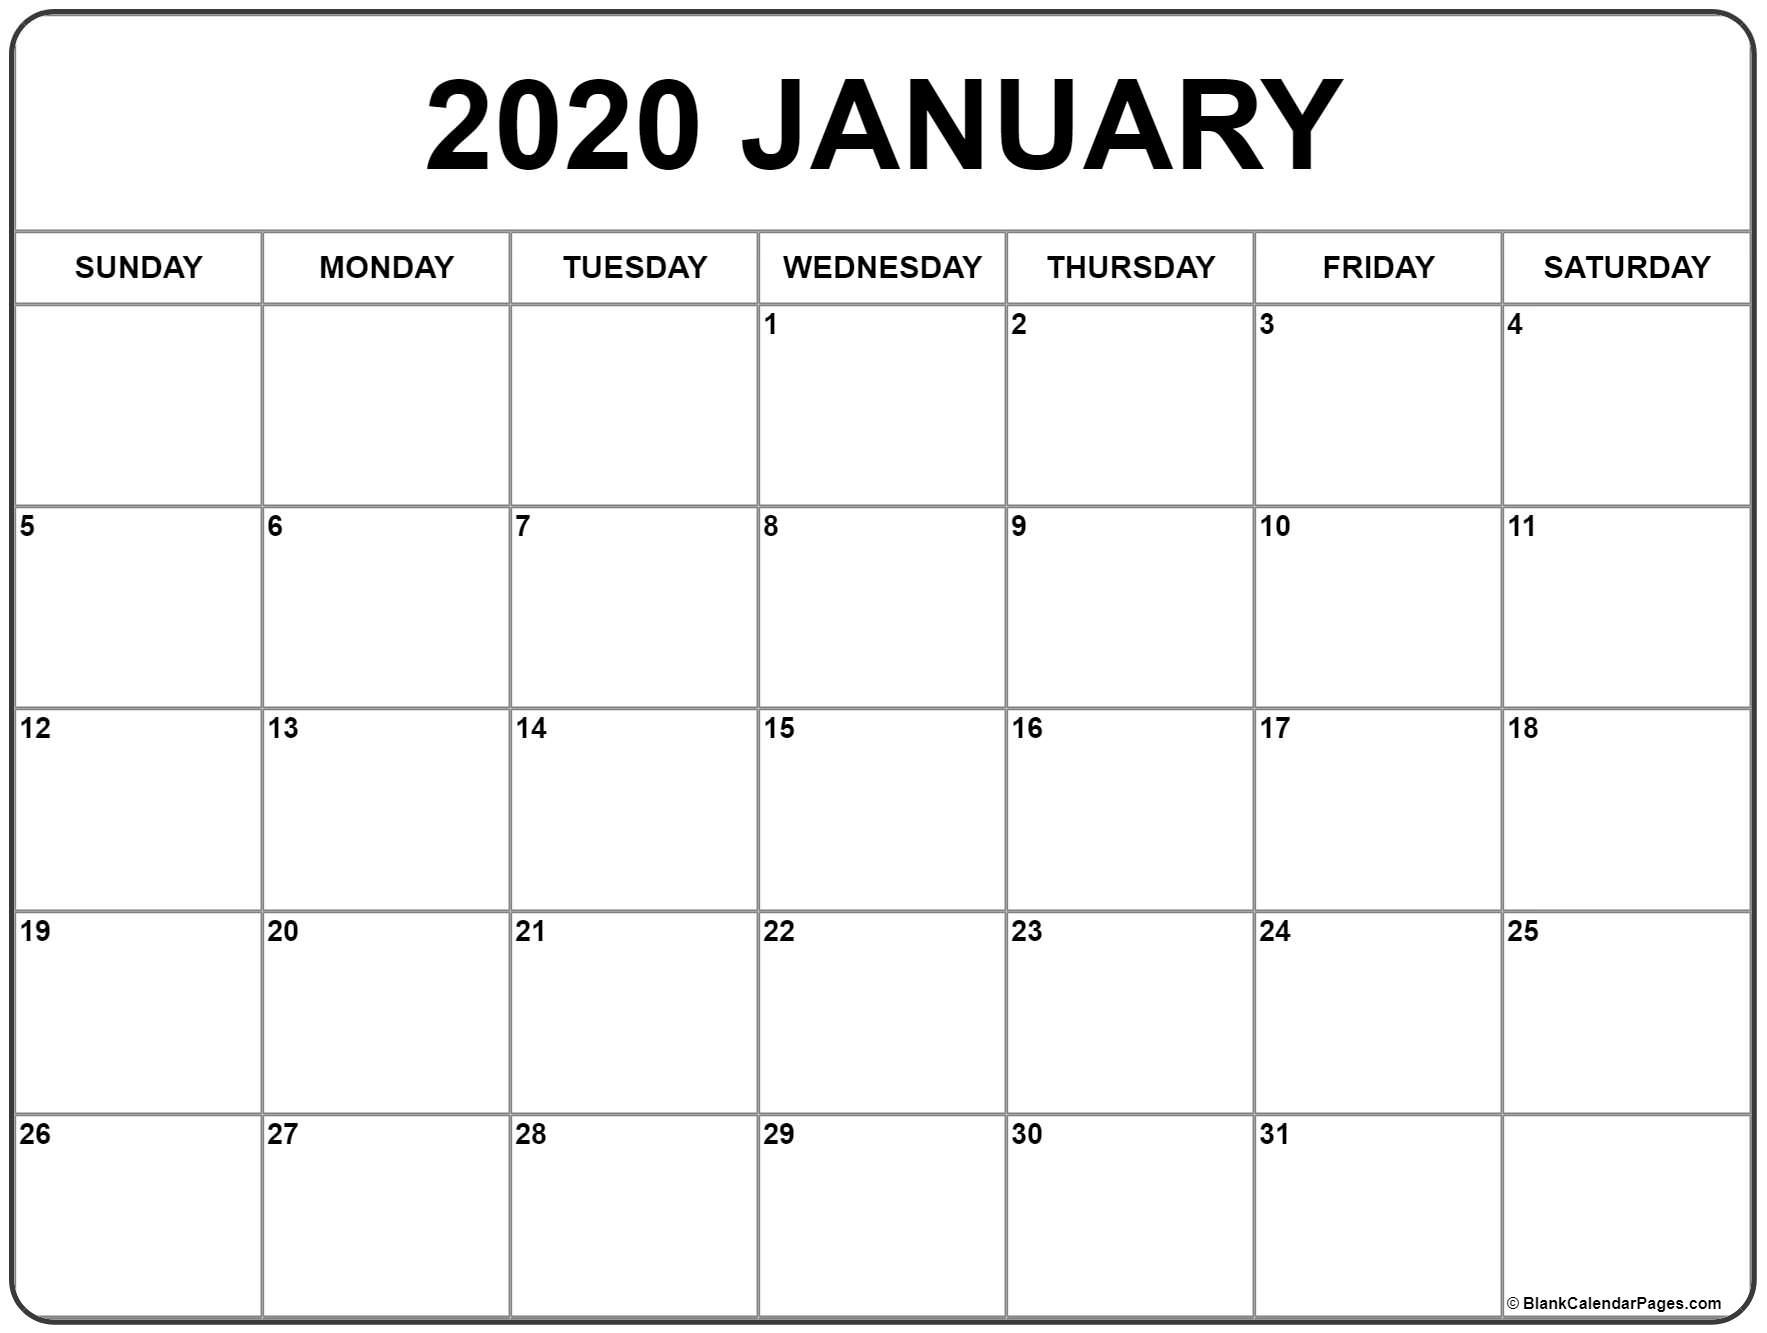 Print Monthly Calendar 2020 - Wpa.wpart.co with Free Printable Vertex Monthly Calendar 2020